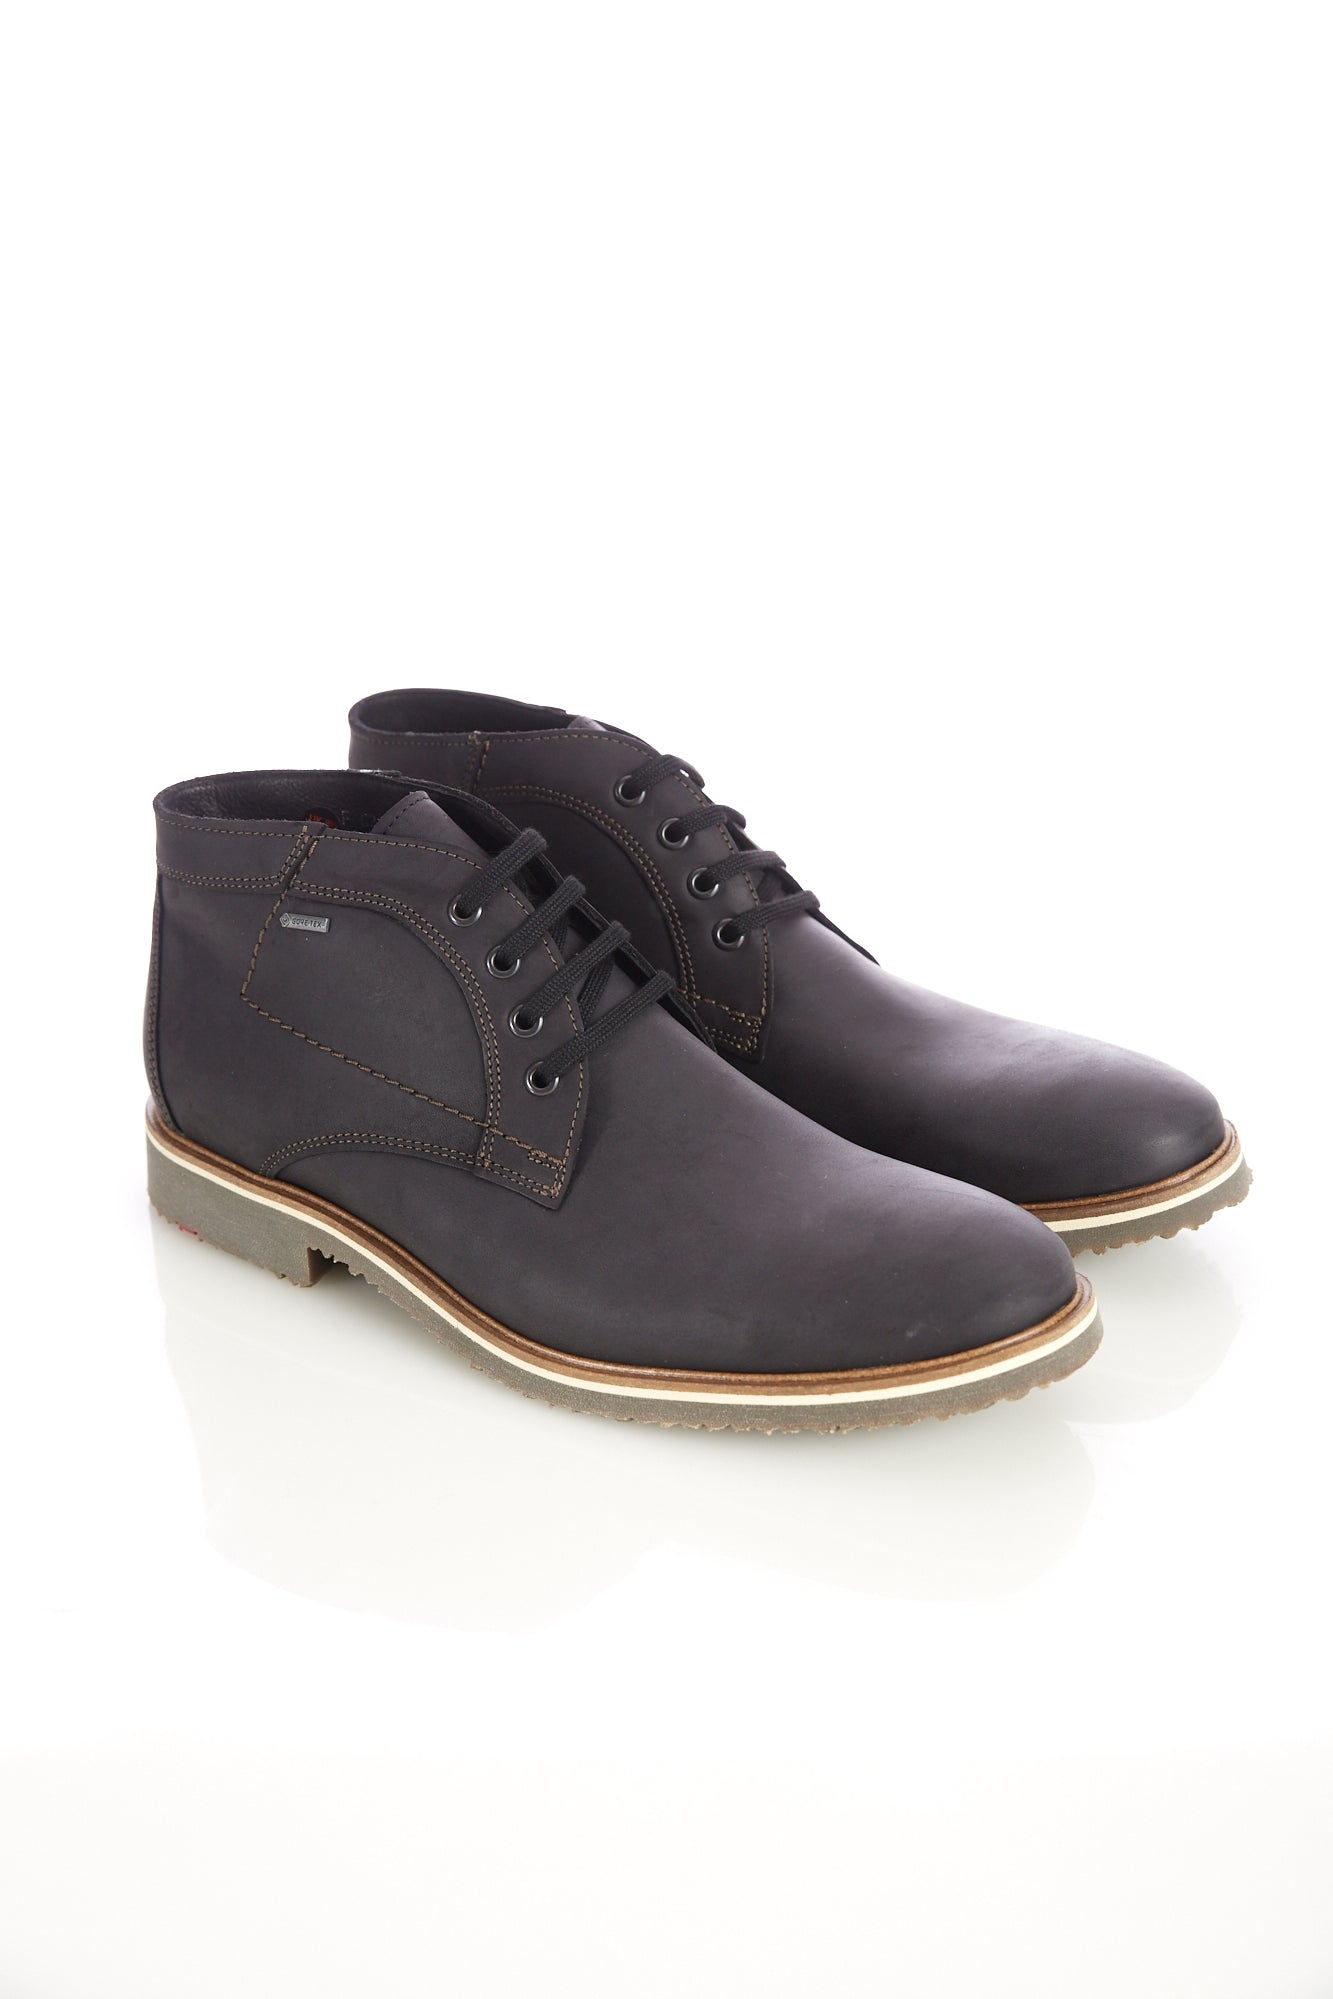 Lloyd 'Vallett' Black Leather Gore-Tex Chukka Boot - Shoes - Lloyd - LALONDE's